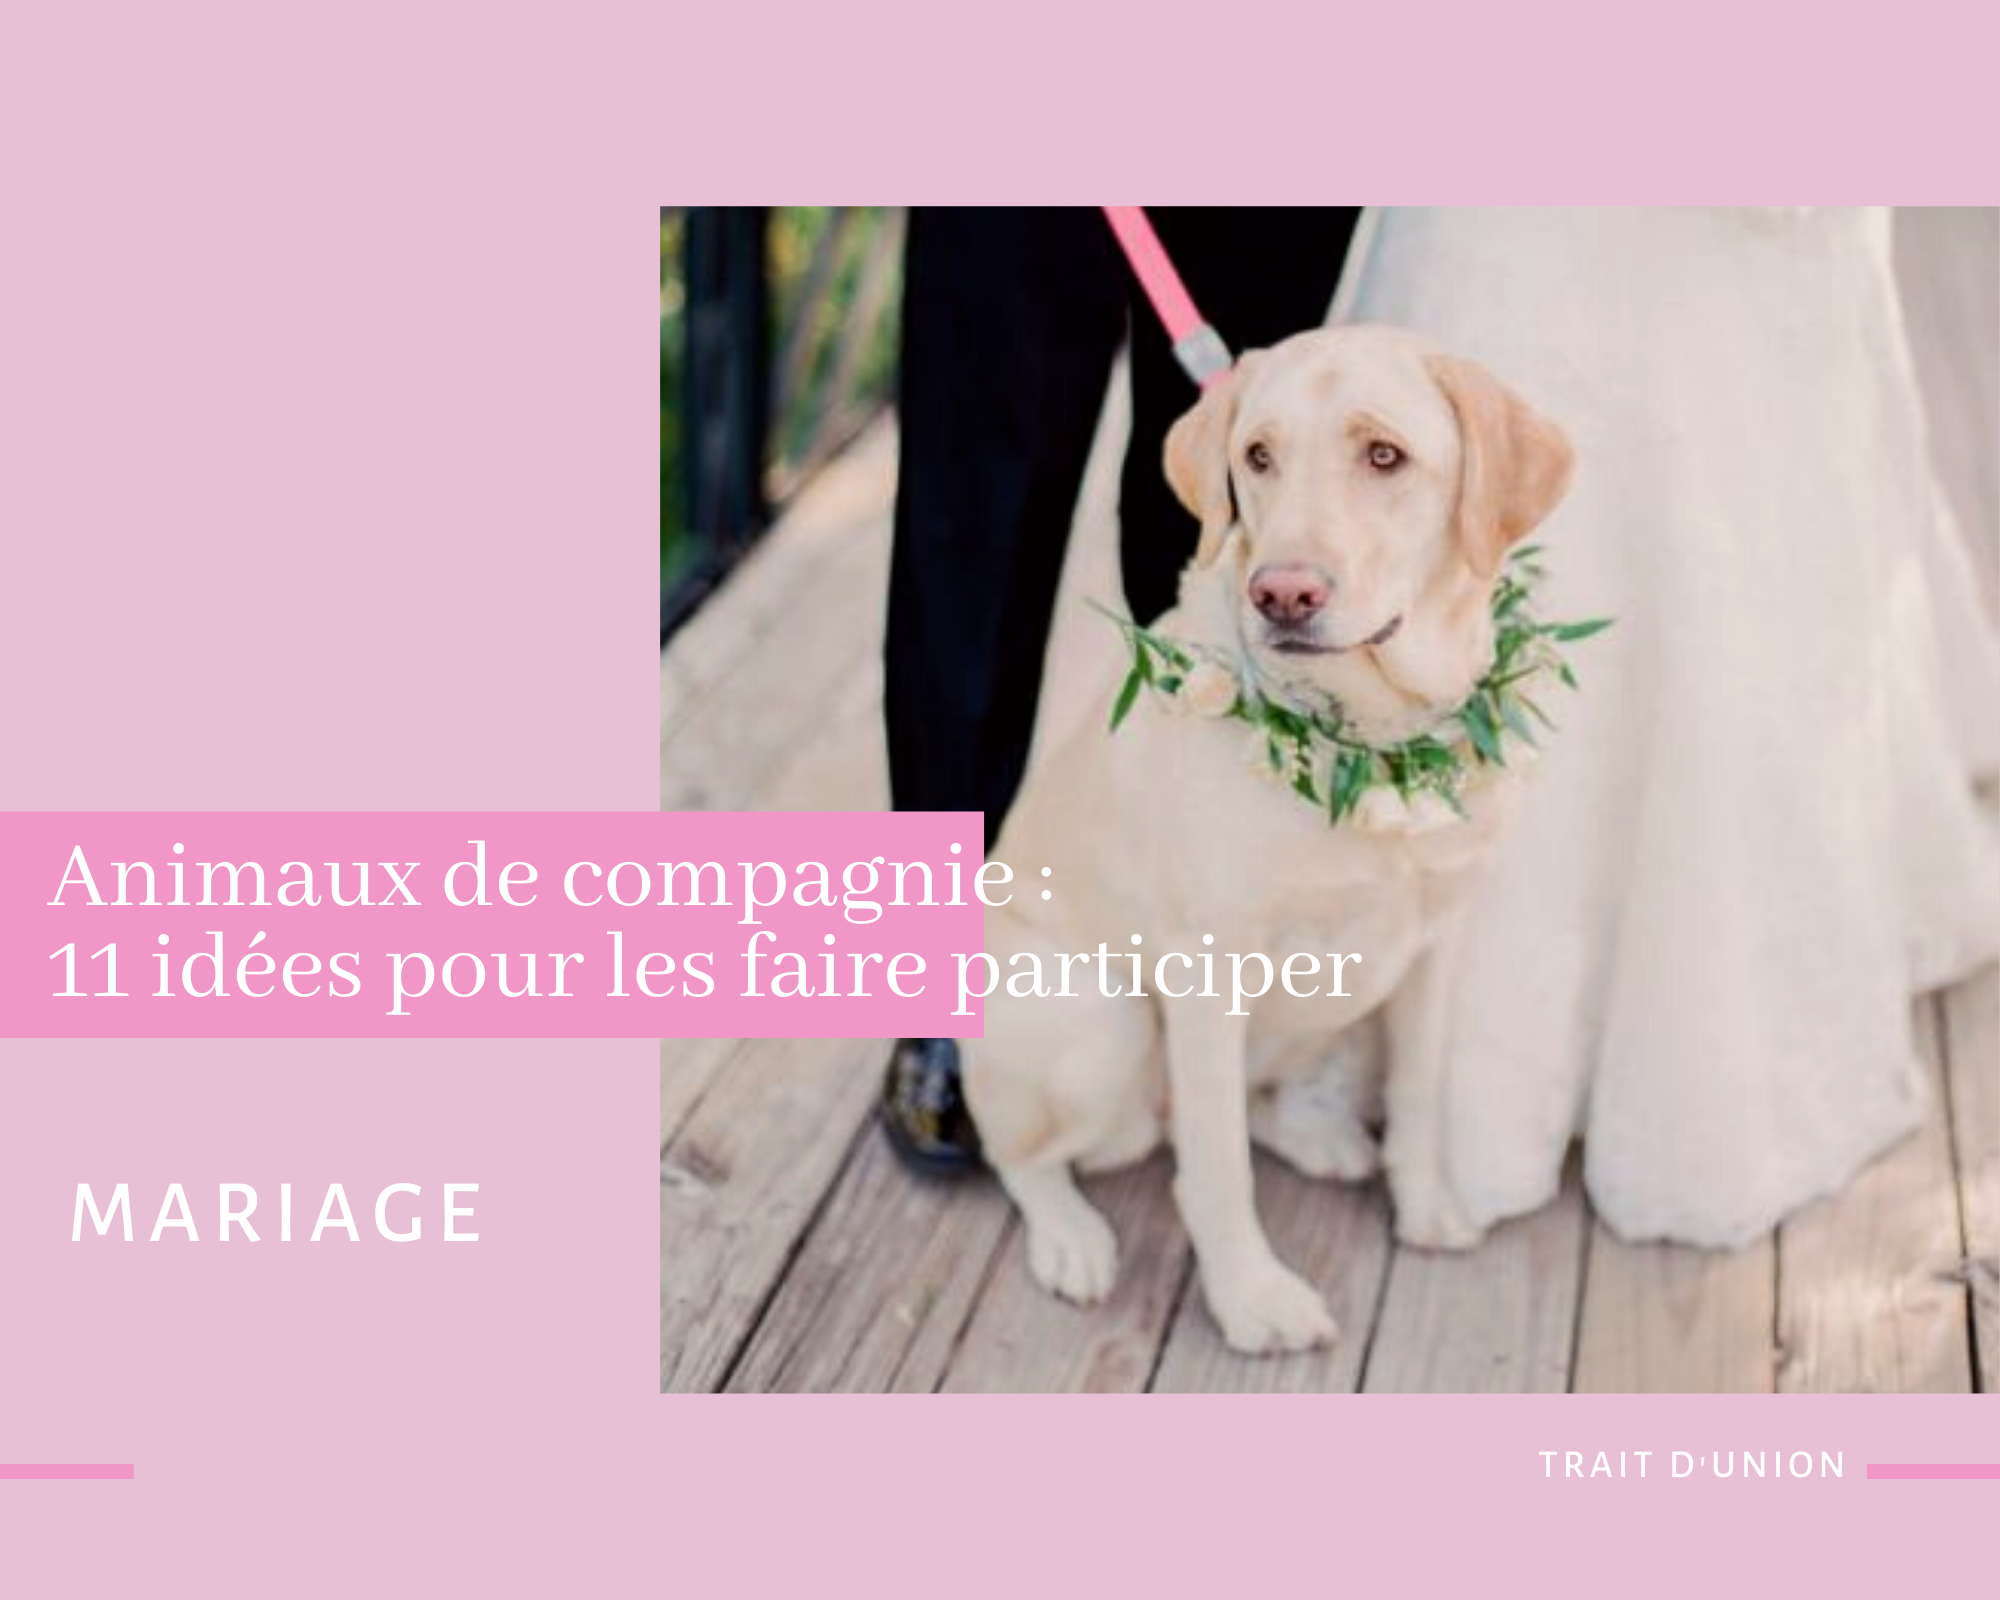 Mariage animaux